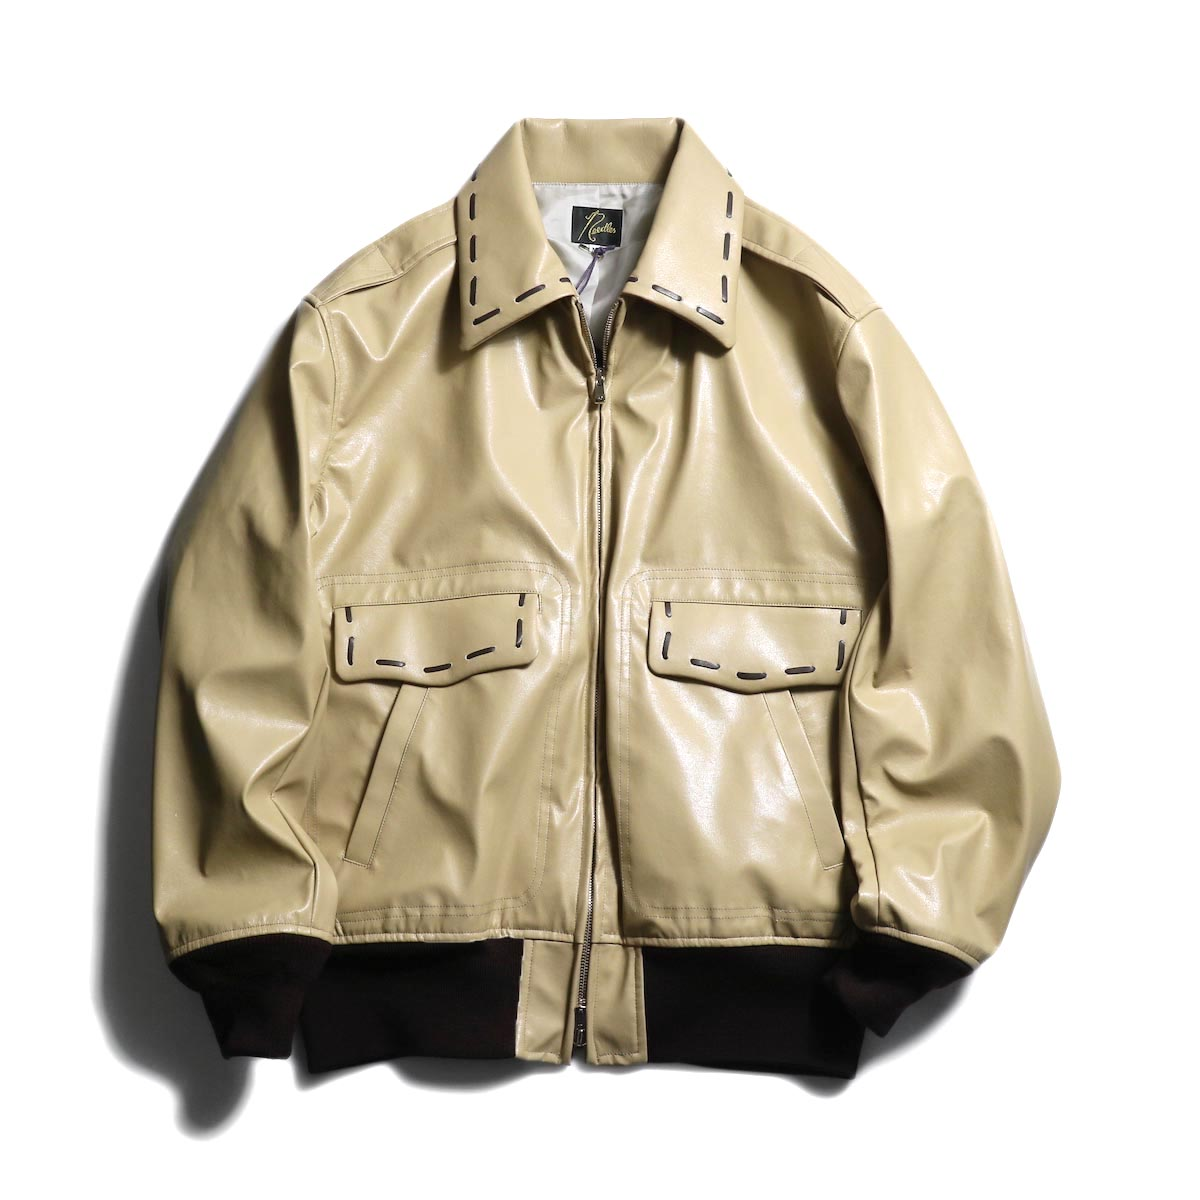 NEEDLES / G-1 Jacket -Synthetic Leather 正面